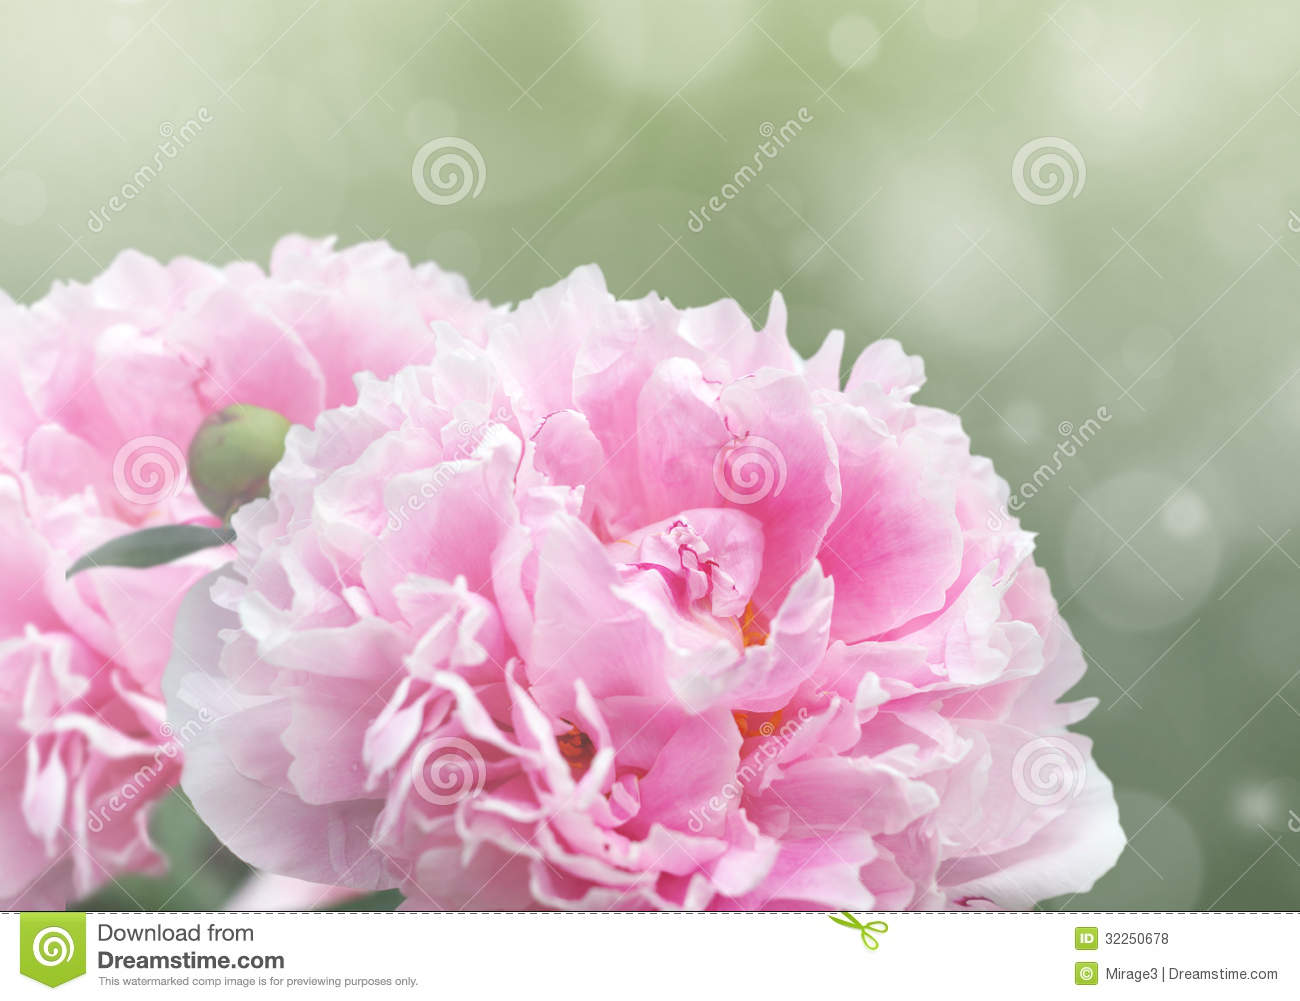 Dreamy Pink Peonies Stock Photo Image Of Leaf Bokeh 32250678